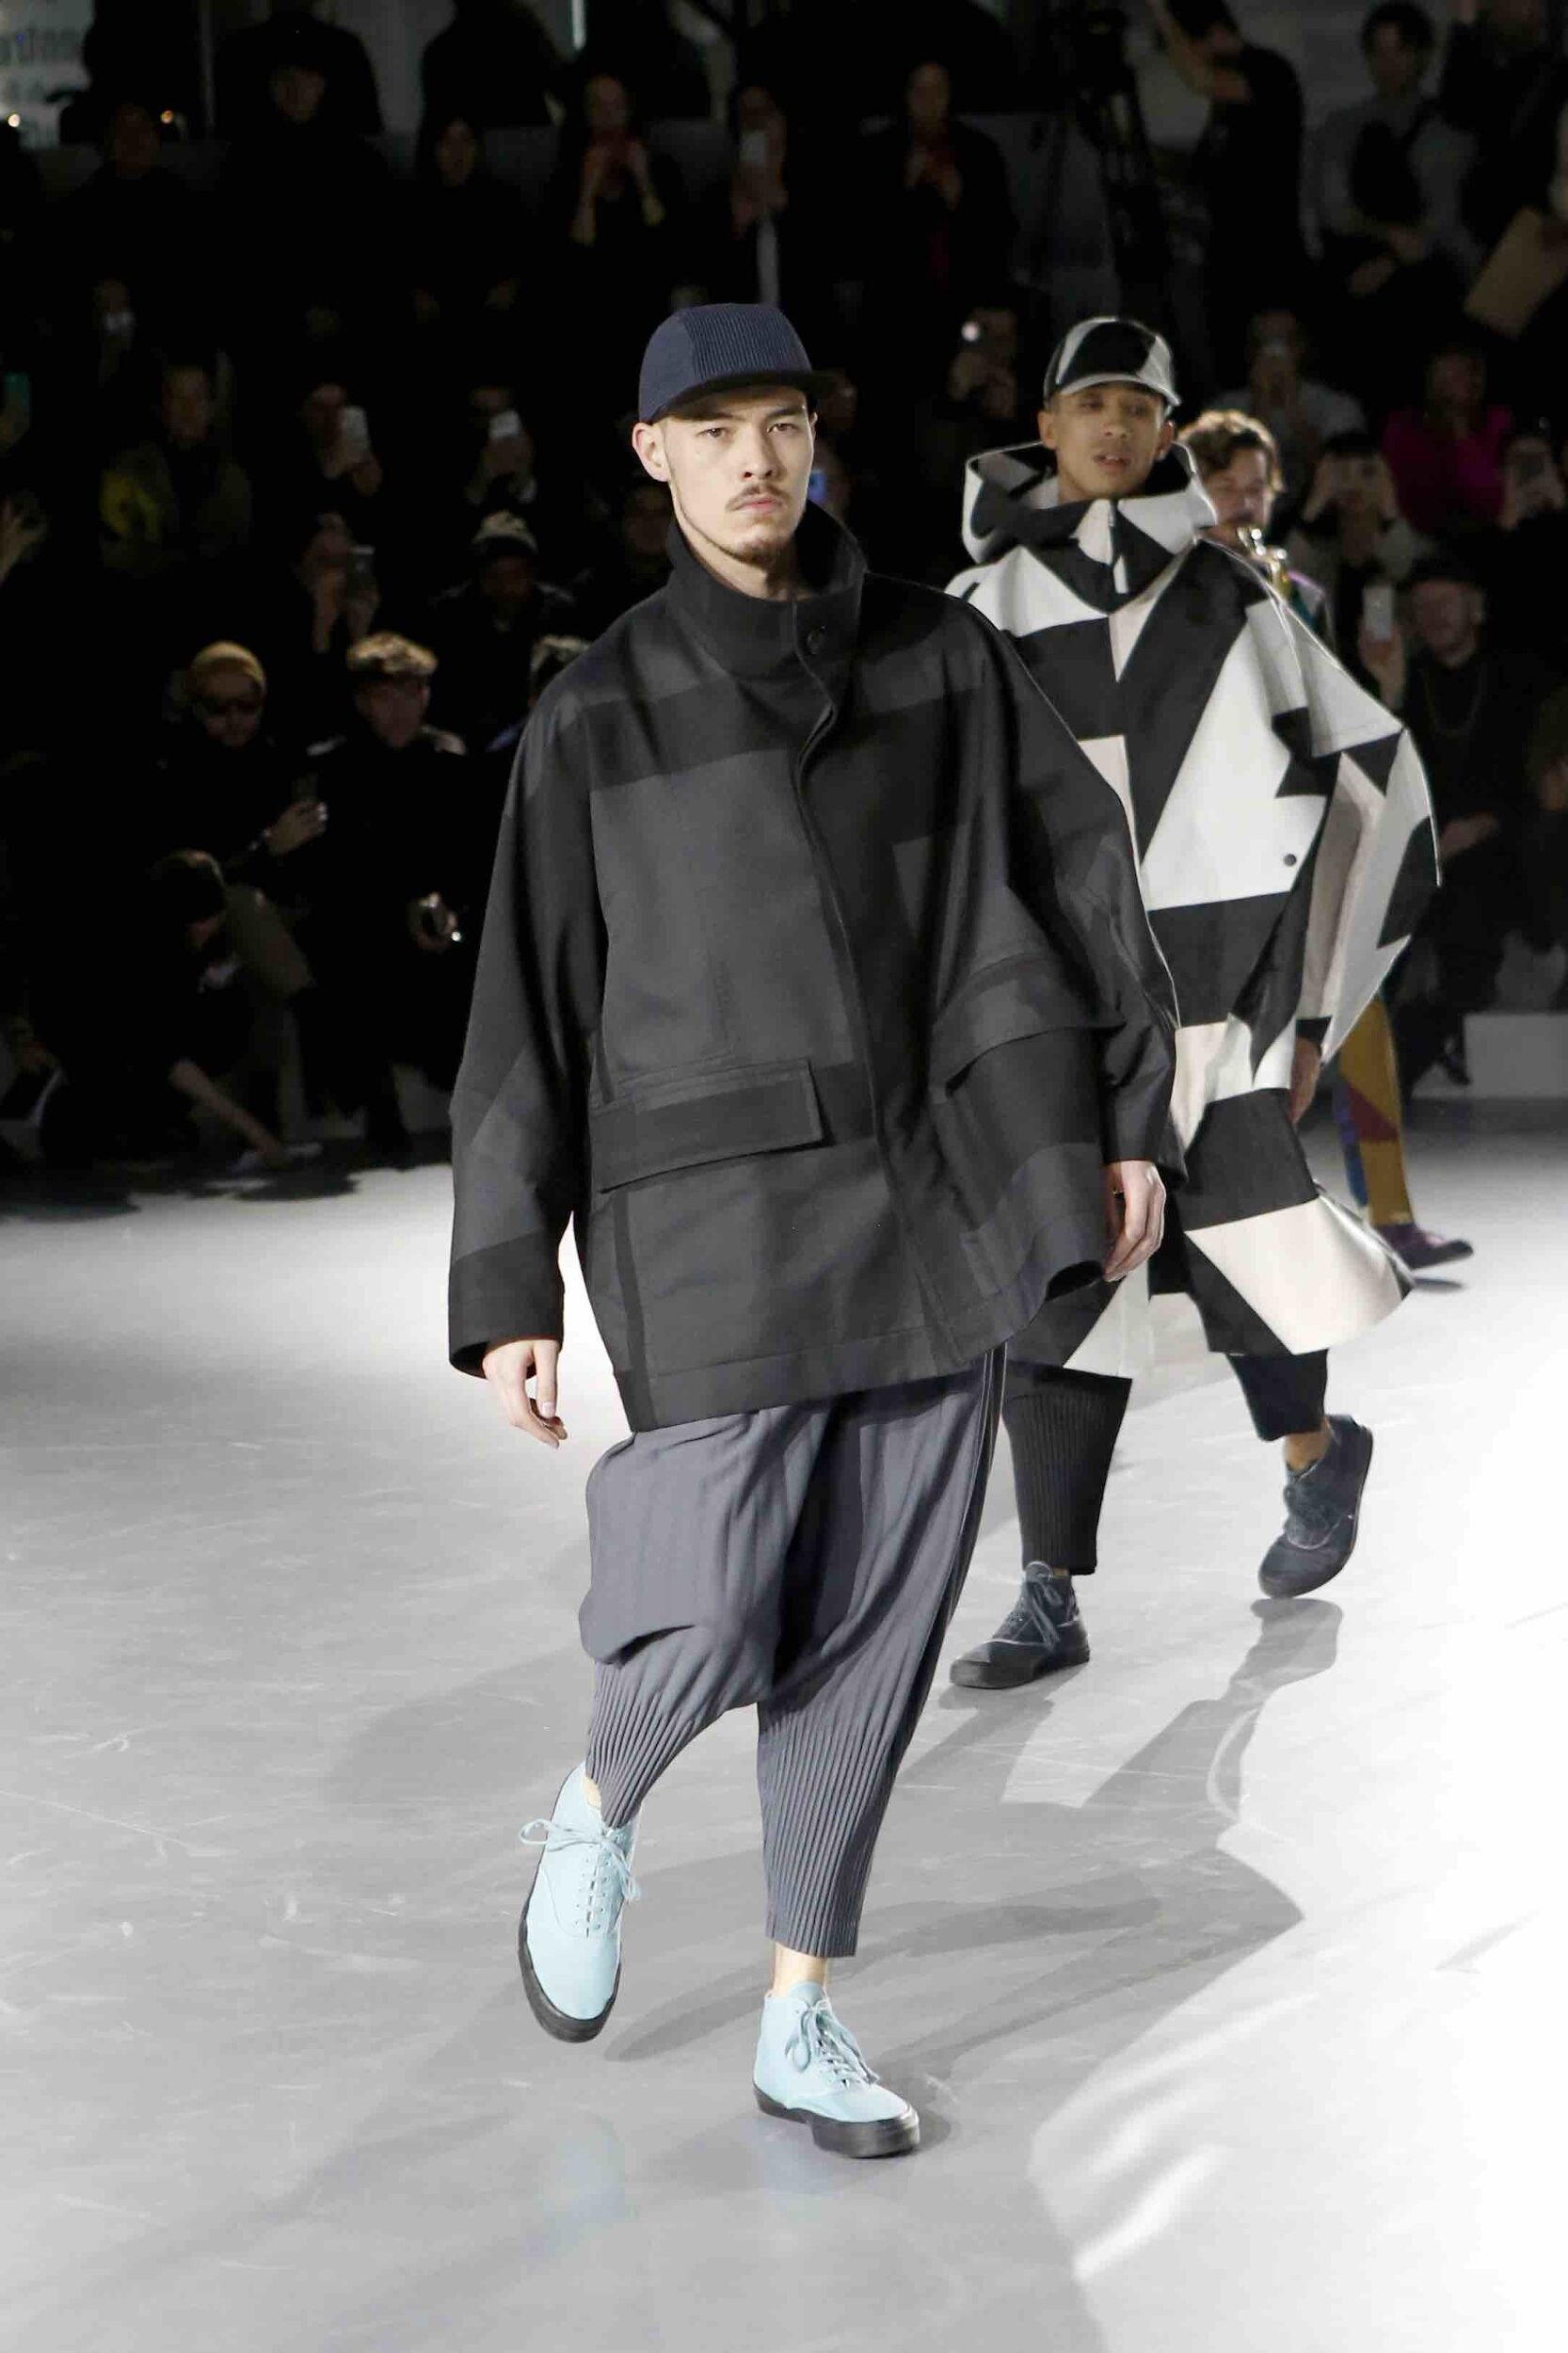 Issey Miyake Men's Collection 2020-21